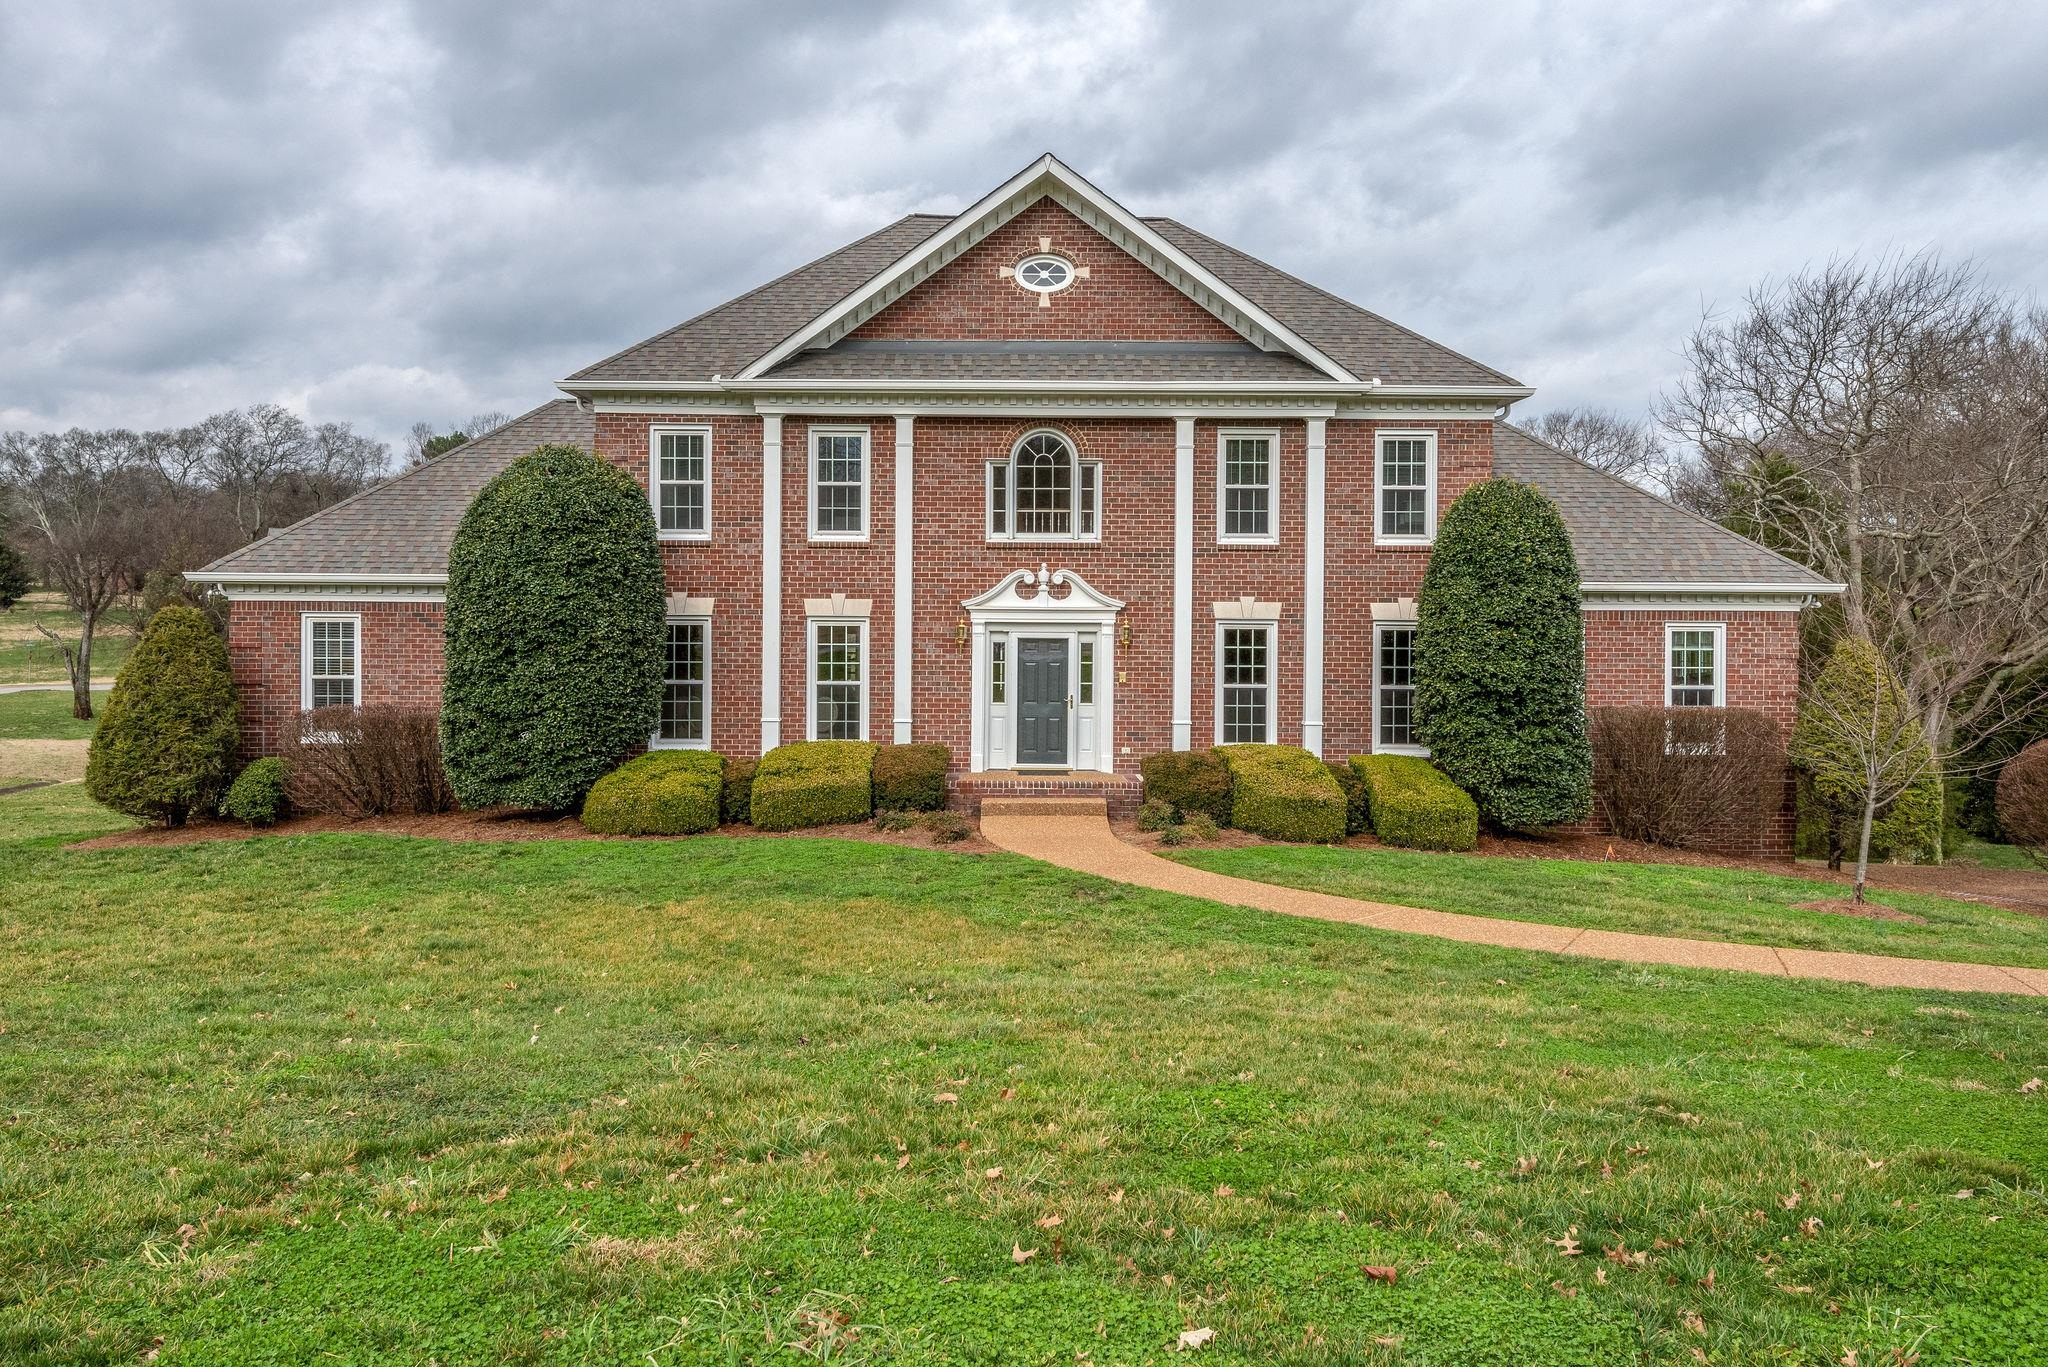 1519 Knox Valley, Brentwood, TN   PURCHASED PRICE $740,000  4 BEDS · 3 BATHS · 3464 SQF